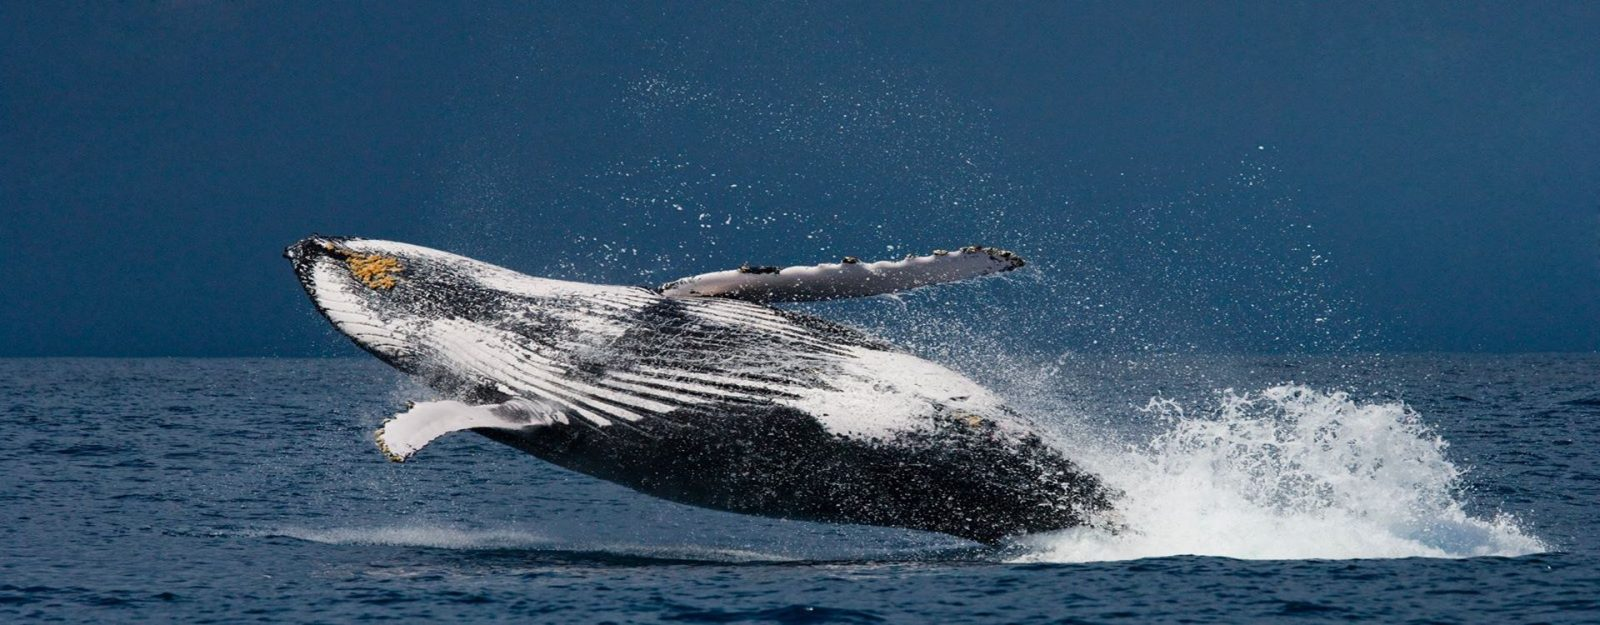 Madagascar - Whale-watching